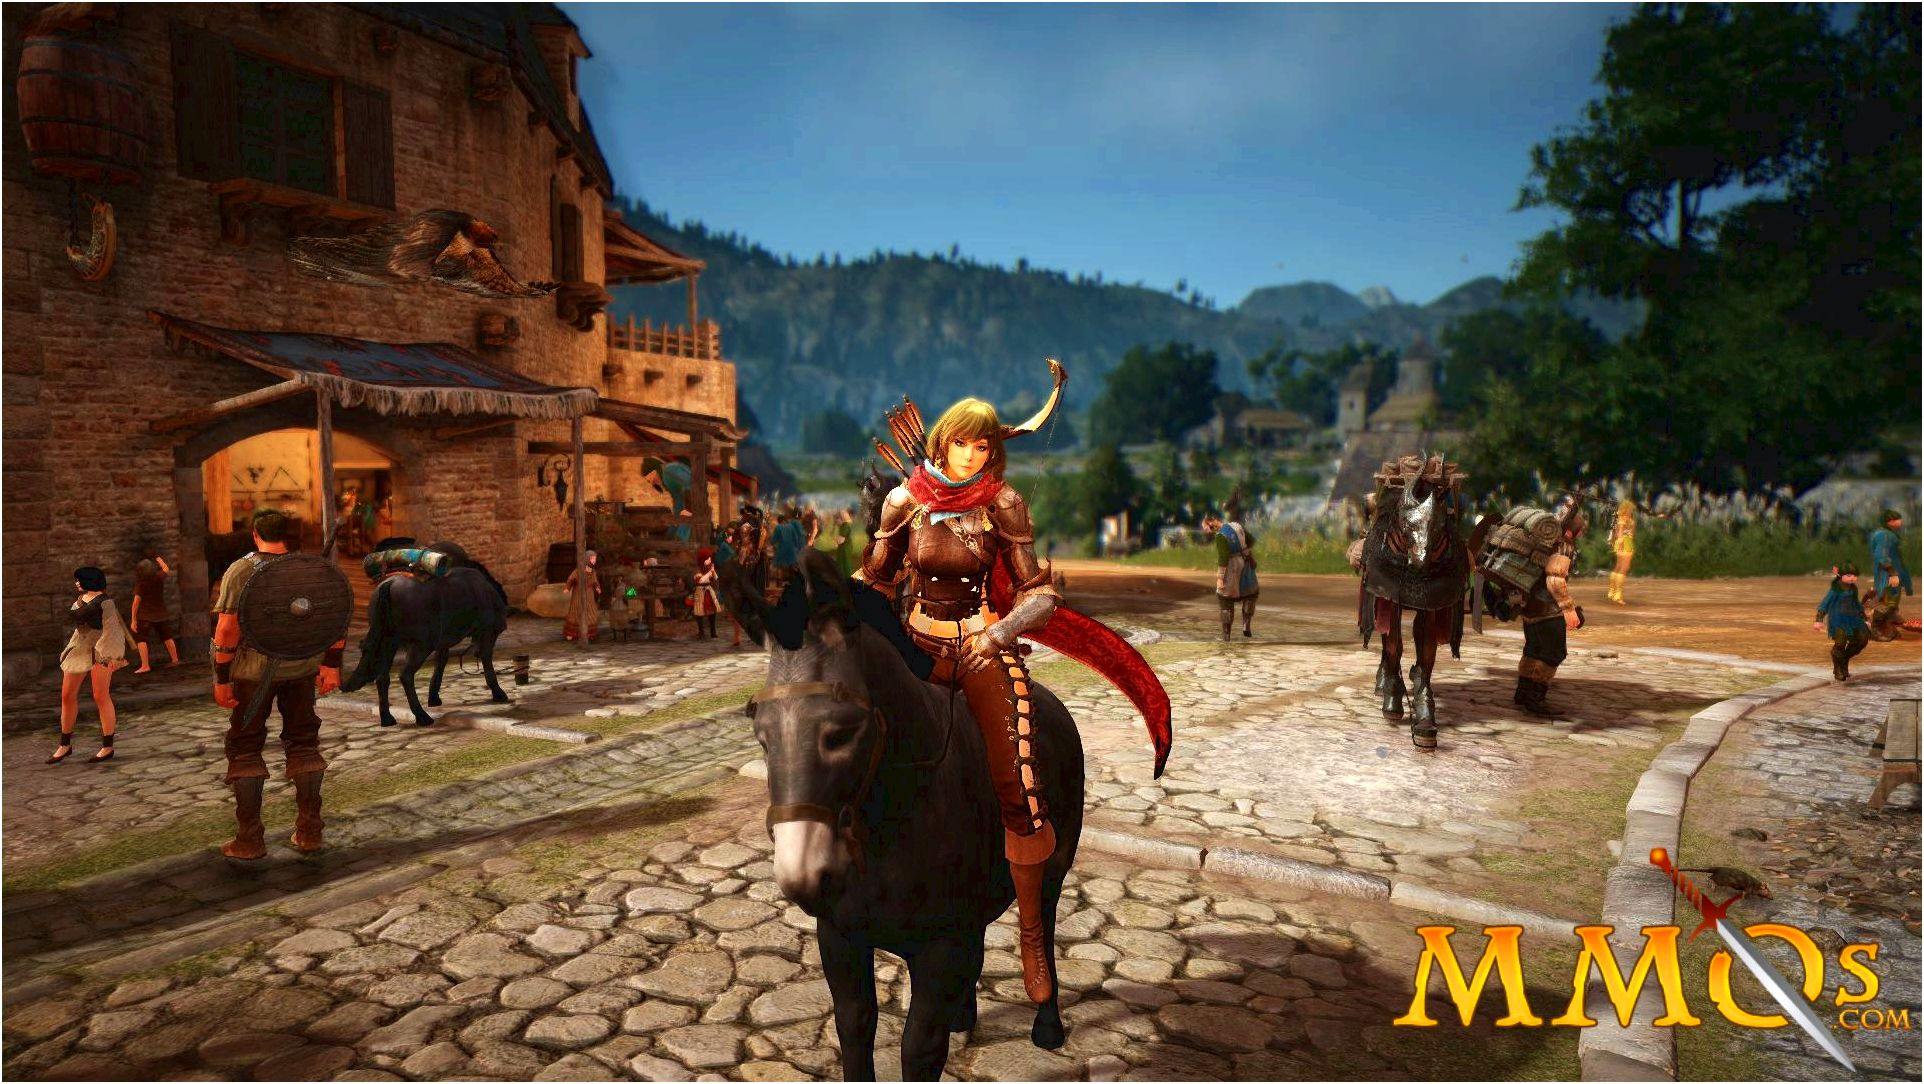 Black desert online - mmog.com from the